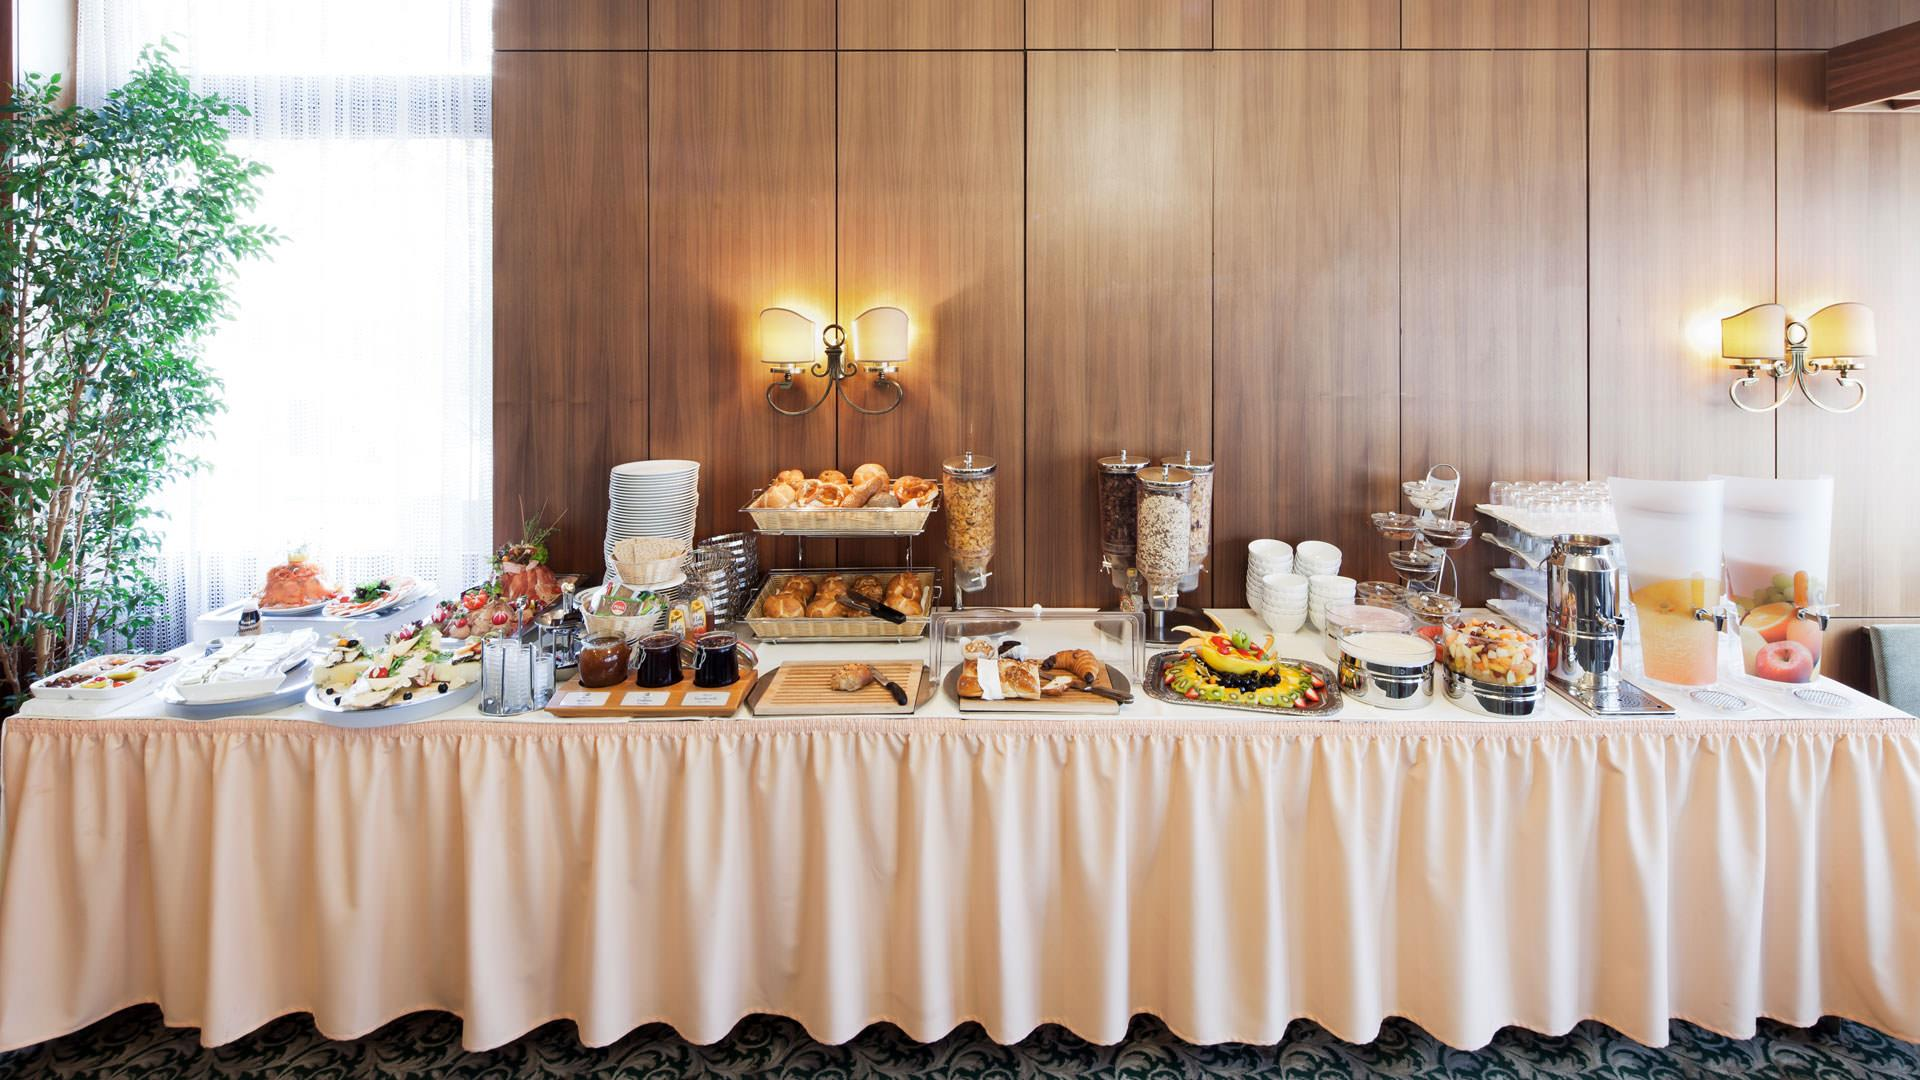 Breakfast buffet in a hotel